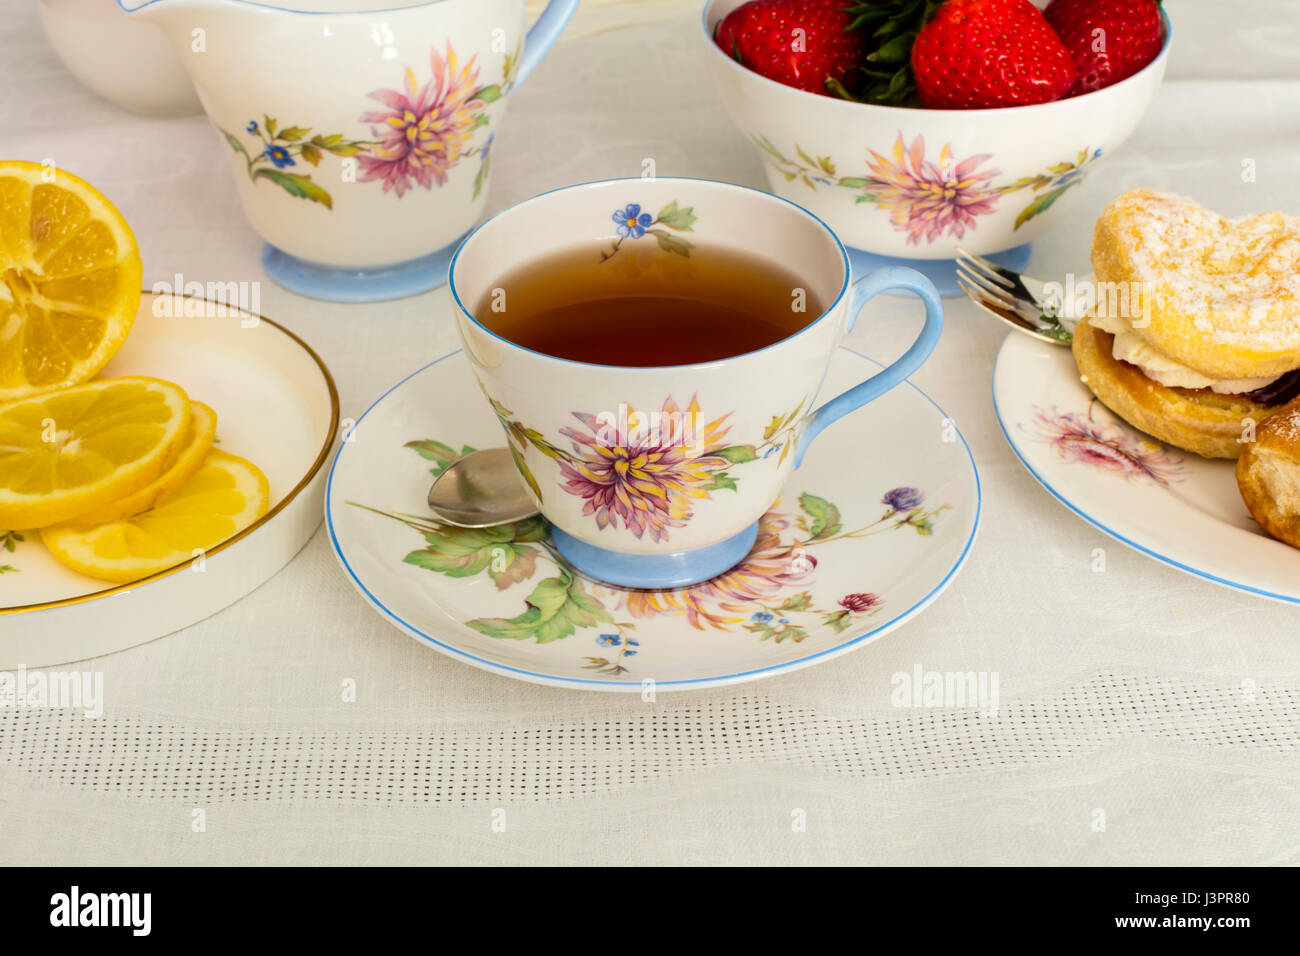 Cup of tea served in a vintage fine china tea cup with fresh cream cakes. - Stock Image